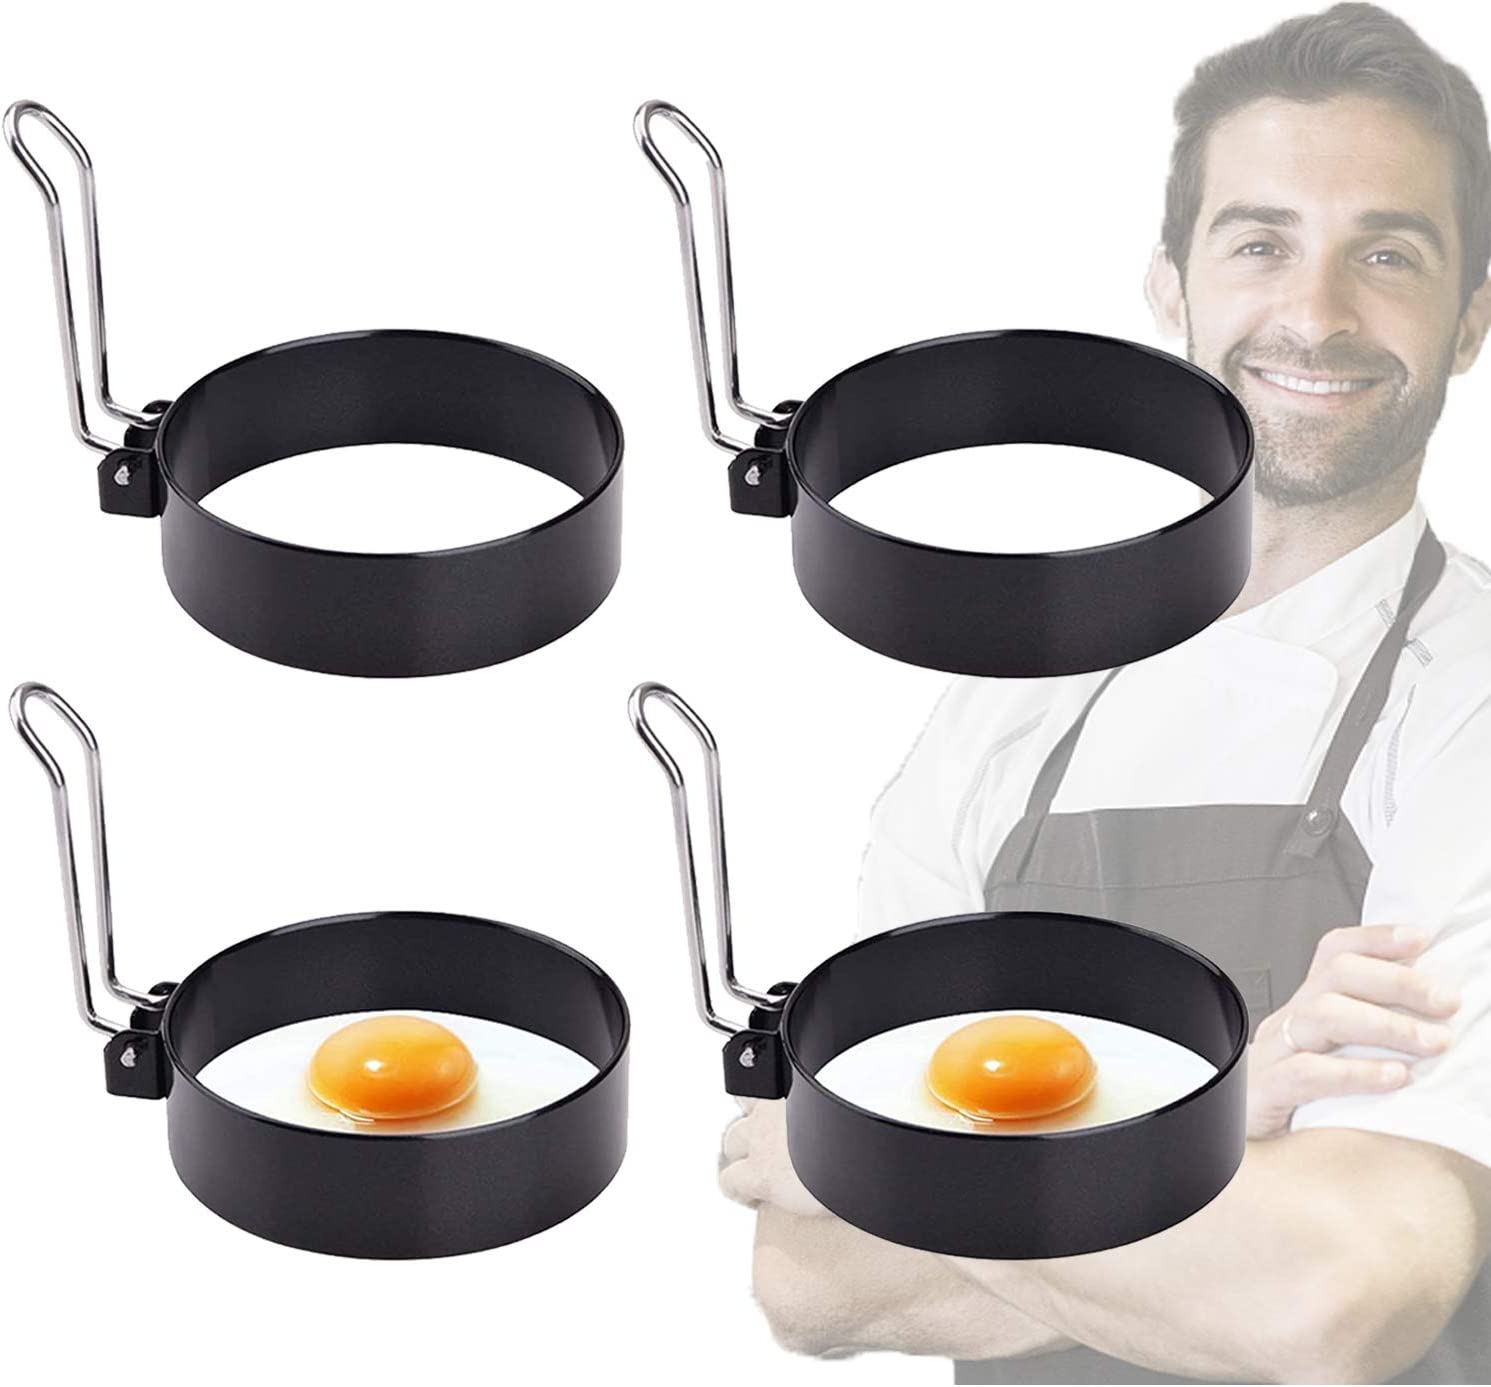 Egg Ring, 4PCS Round Professional Pancake Mold, Egg Cooker Rings For Cooking, Stainless Steel Non Stick Round Egg Ring Mold For Fried Egg, Pancakes, Sandwiches